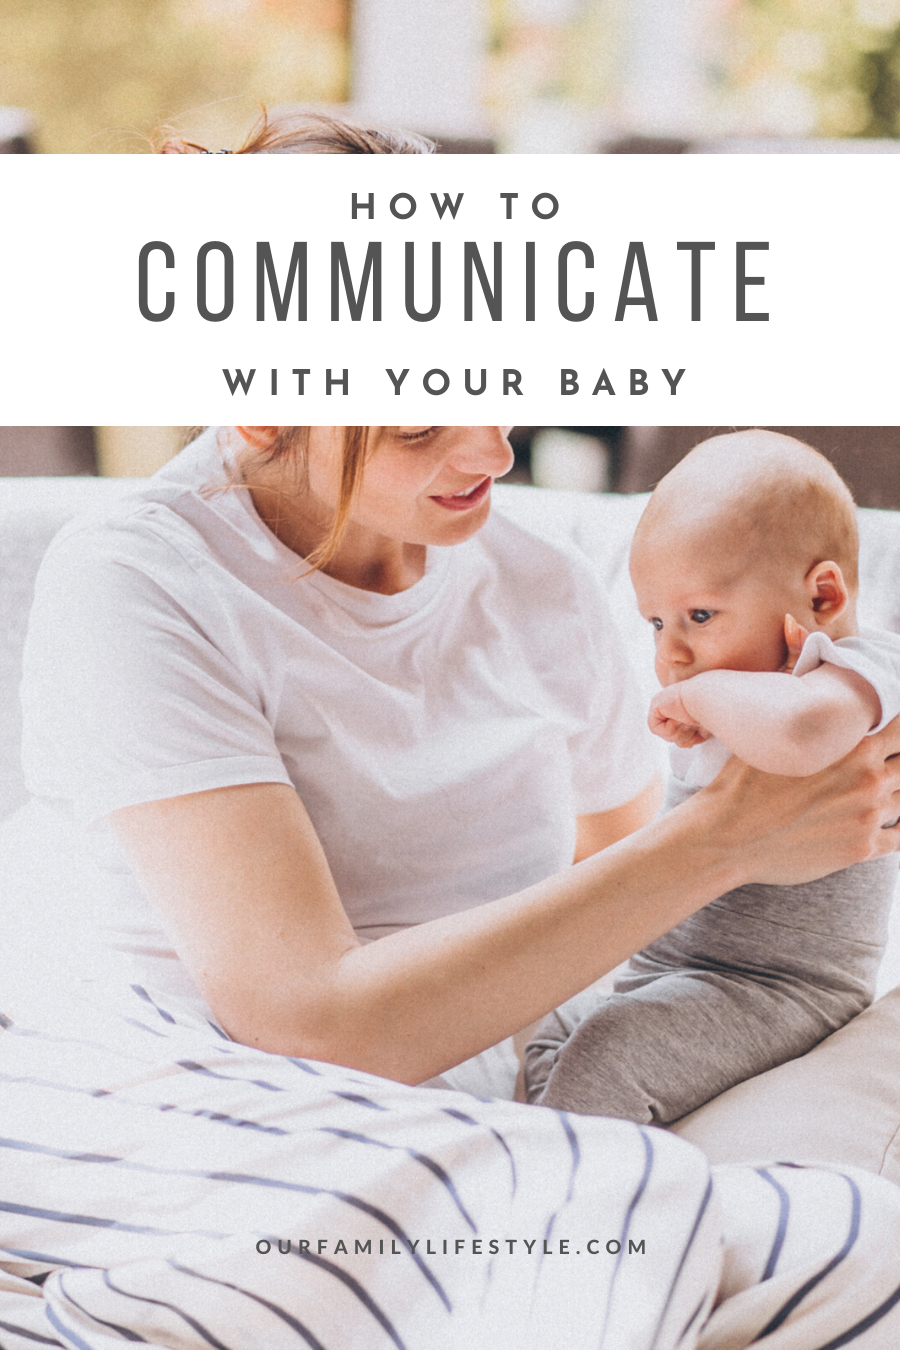 How to Communicate with Your Baby